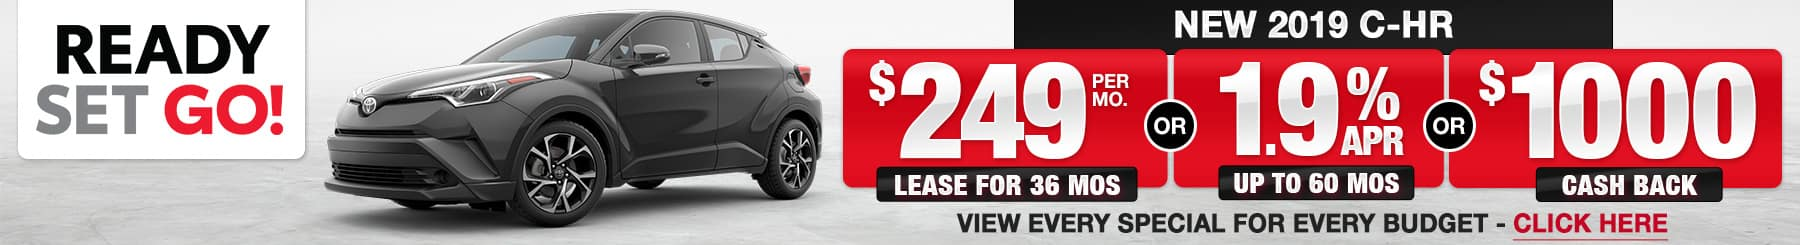 2019 C-HR Lease or Finance Offers